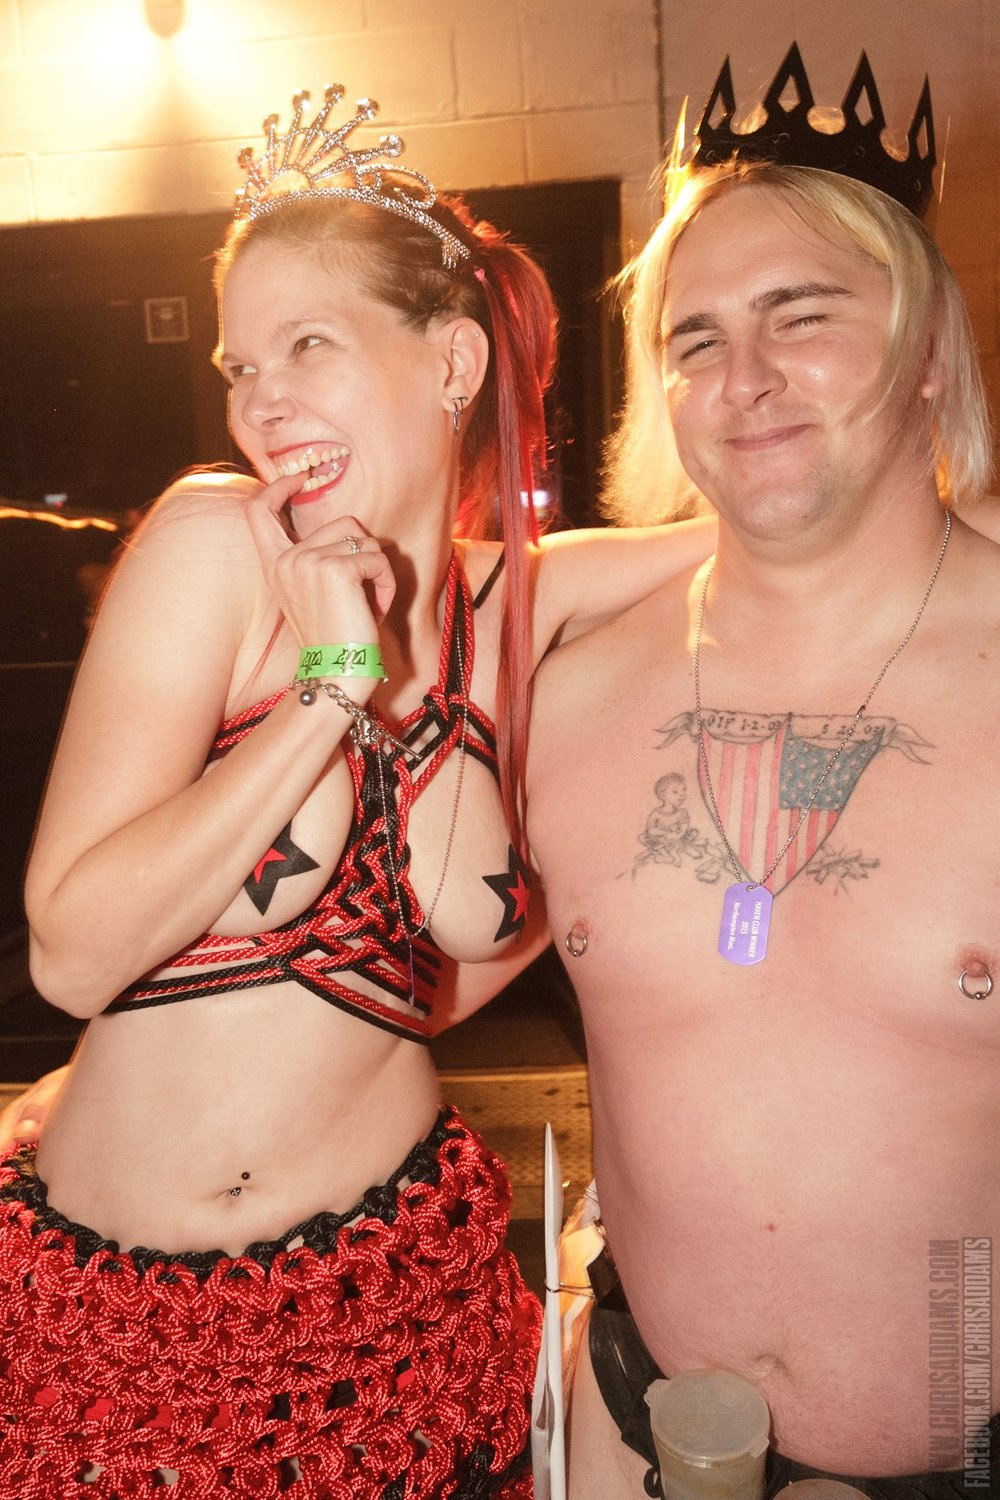 TheHavenClub-Goth-Industrial-Dance-Alternative-Northampton-MA (44).jpg